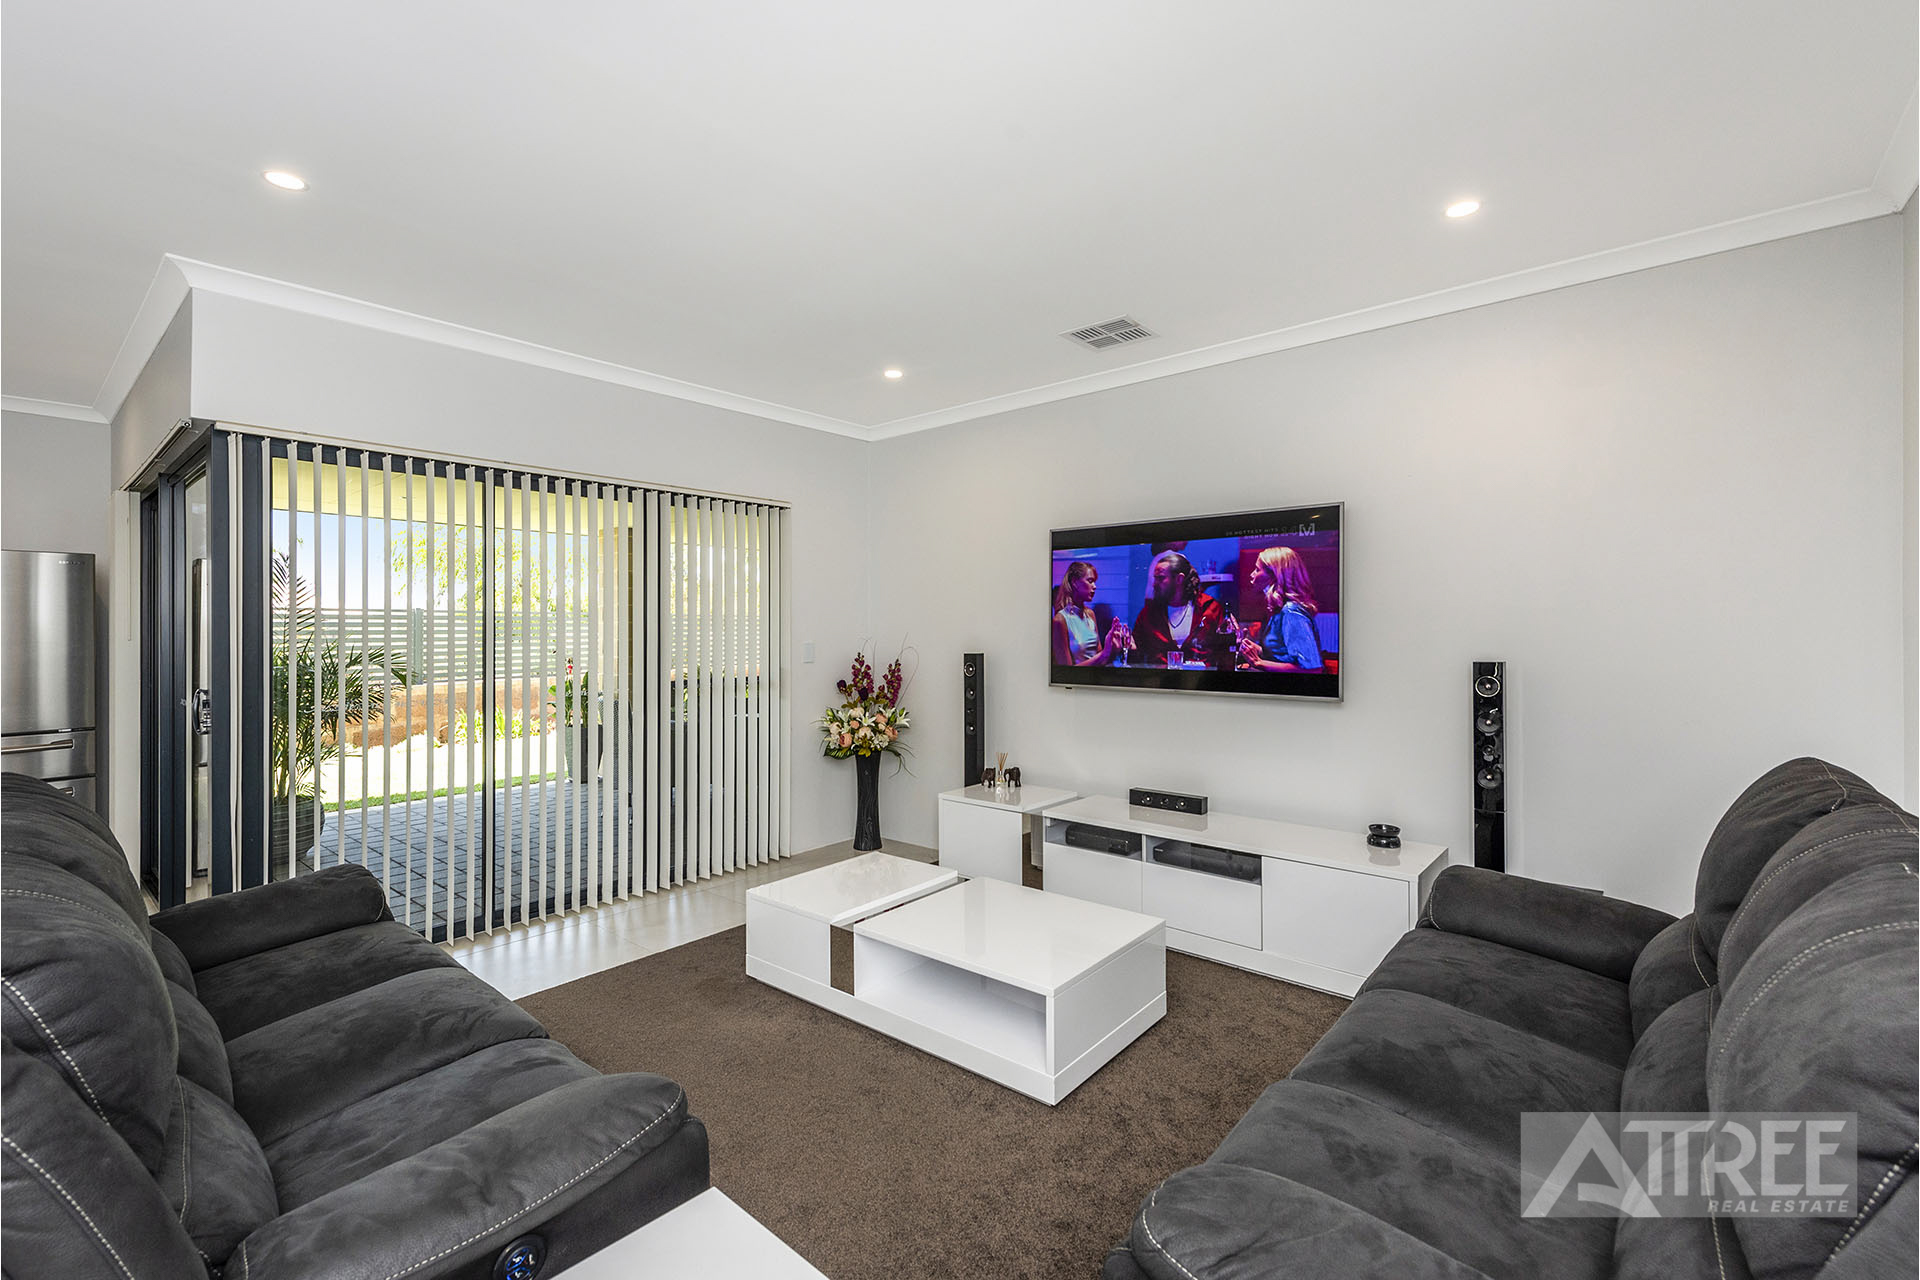 Property for sale in HAYNES, 24 Mandalup Road : Attree Real Estate